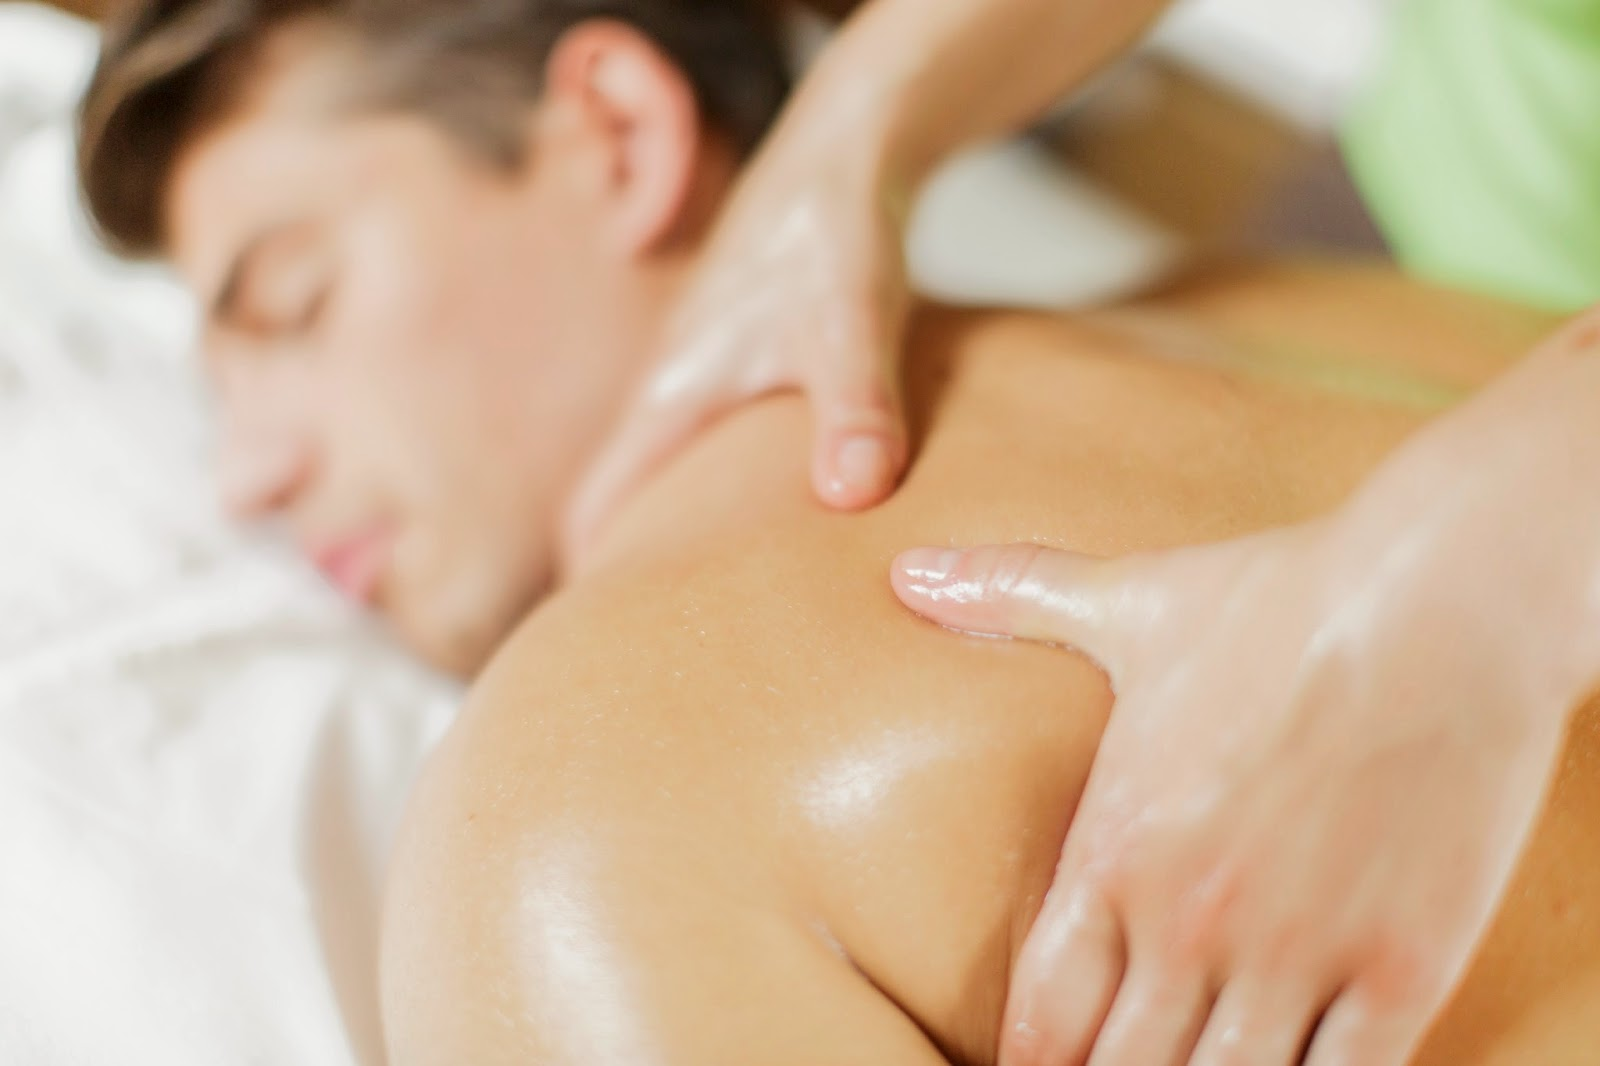 Athletic Therapy - Academy Massage Therapy - Massage Therapist Winnipeg